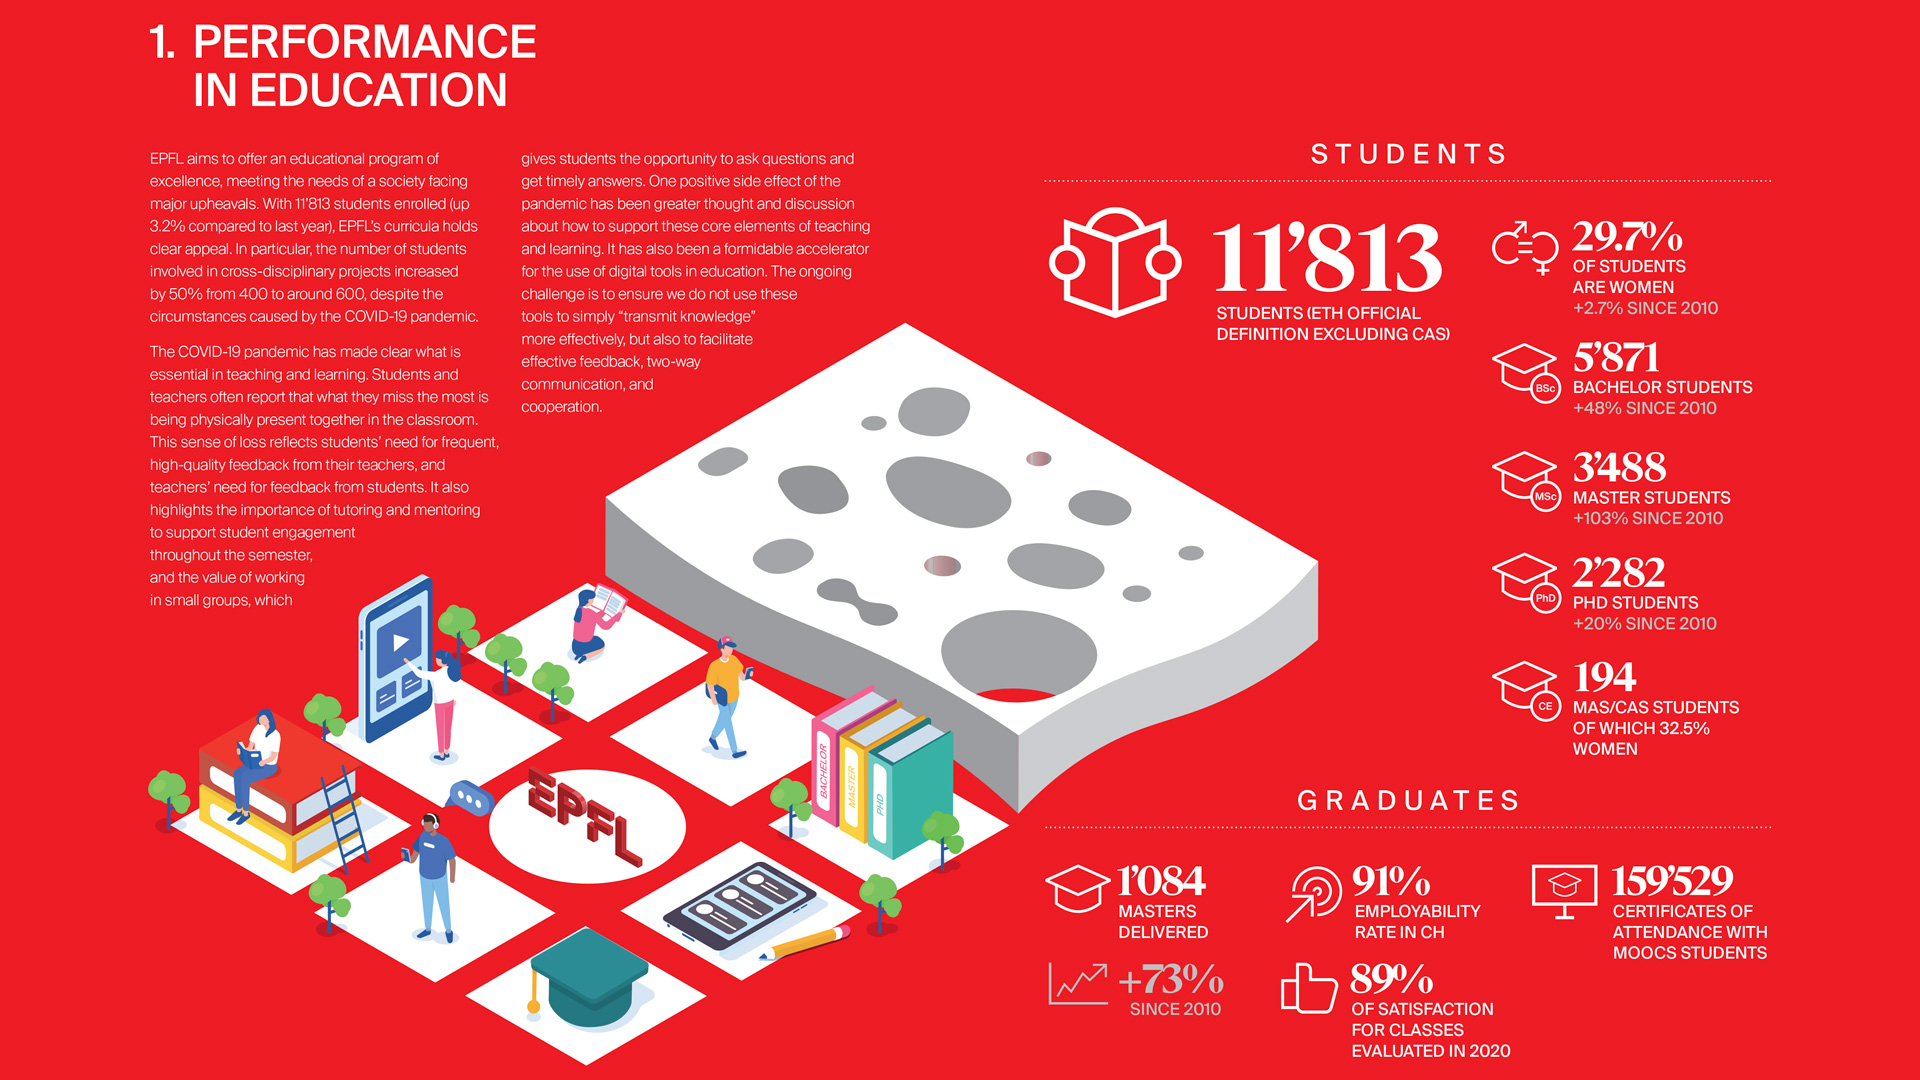 Extrait du EPFL key performance indicators 2020 © EPFL